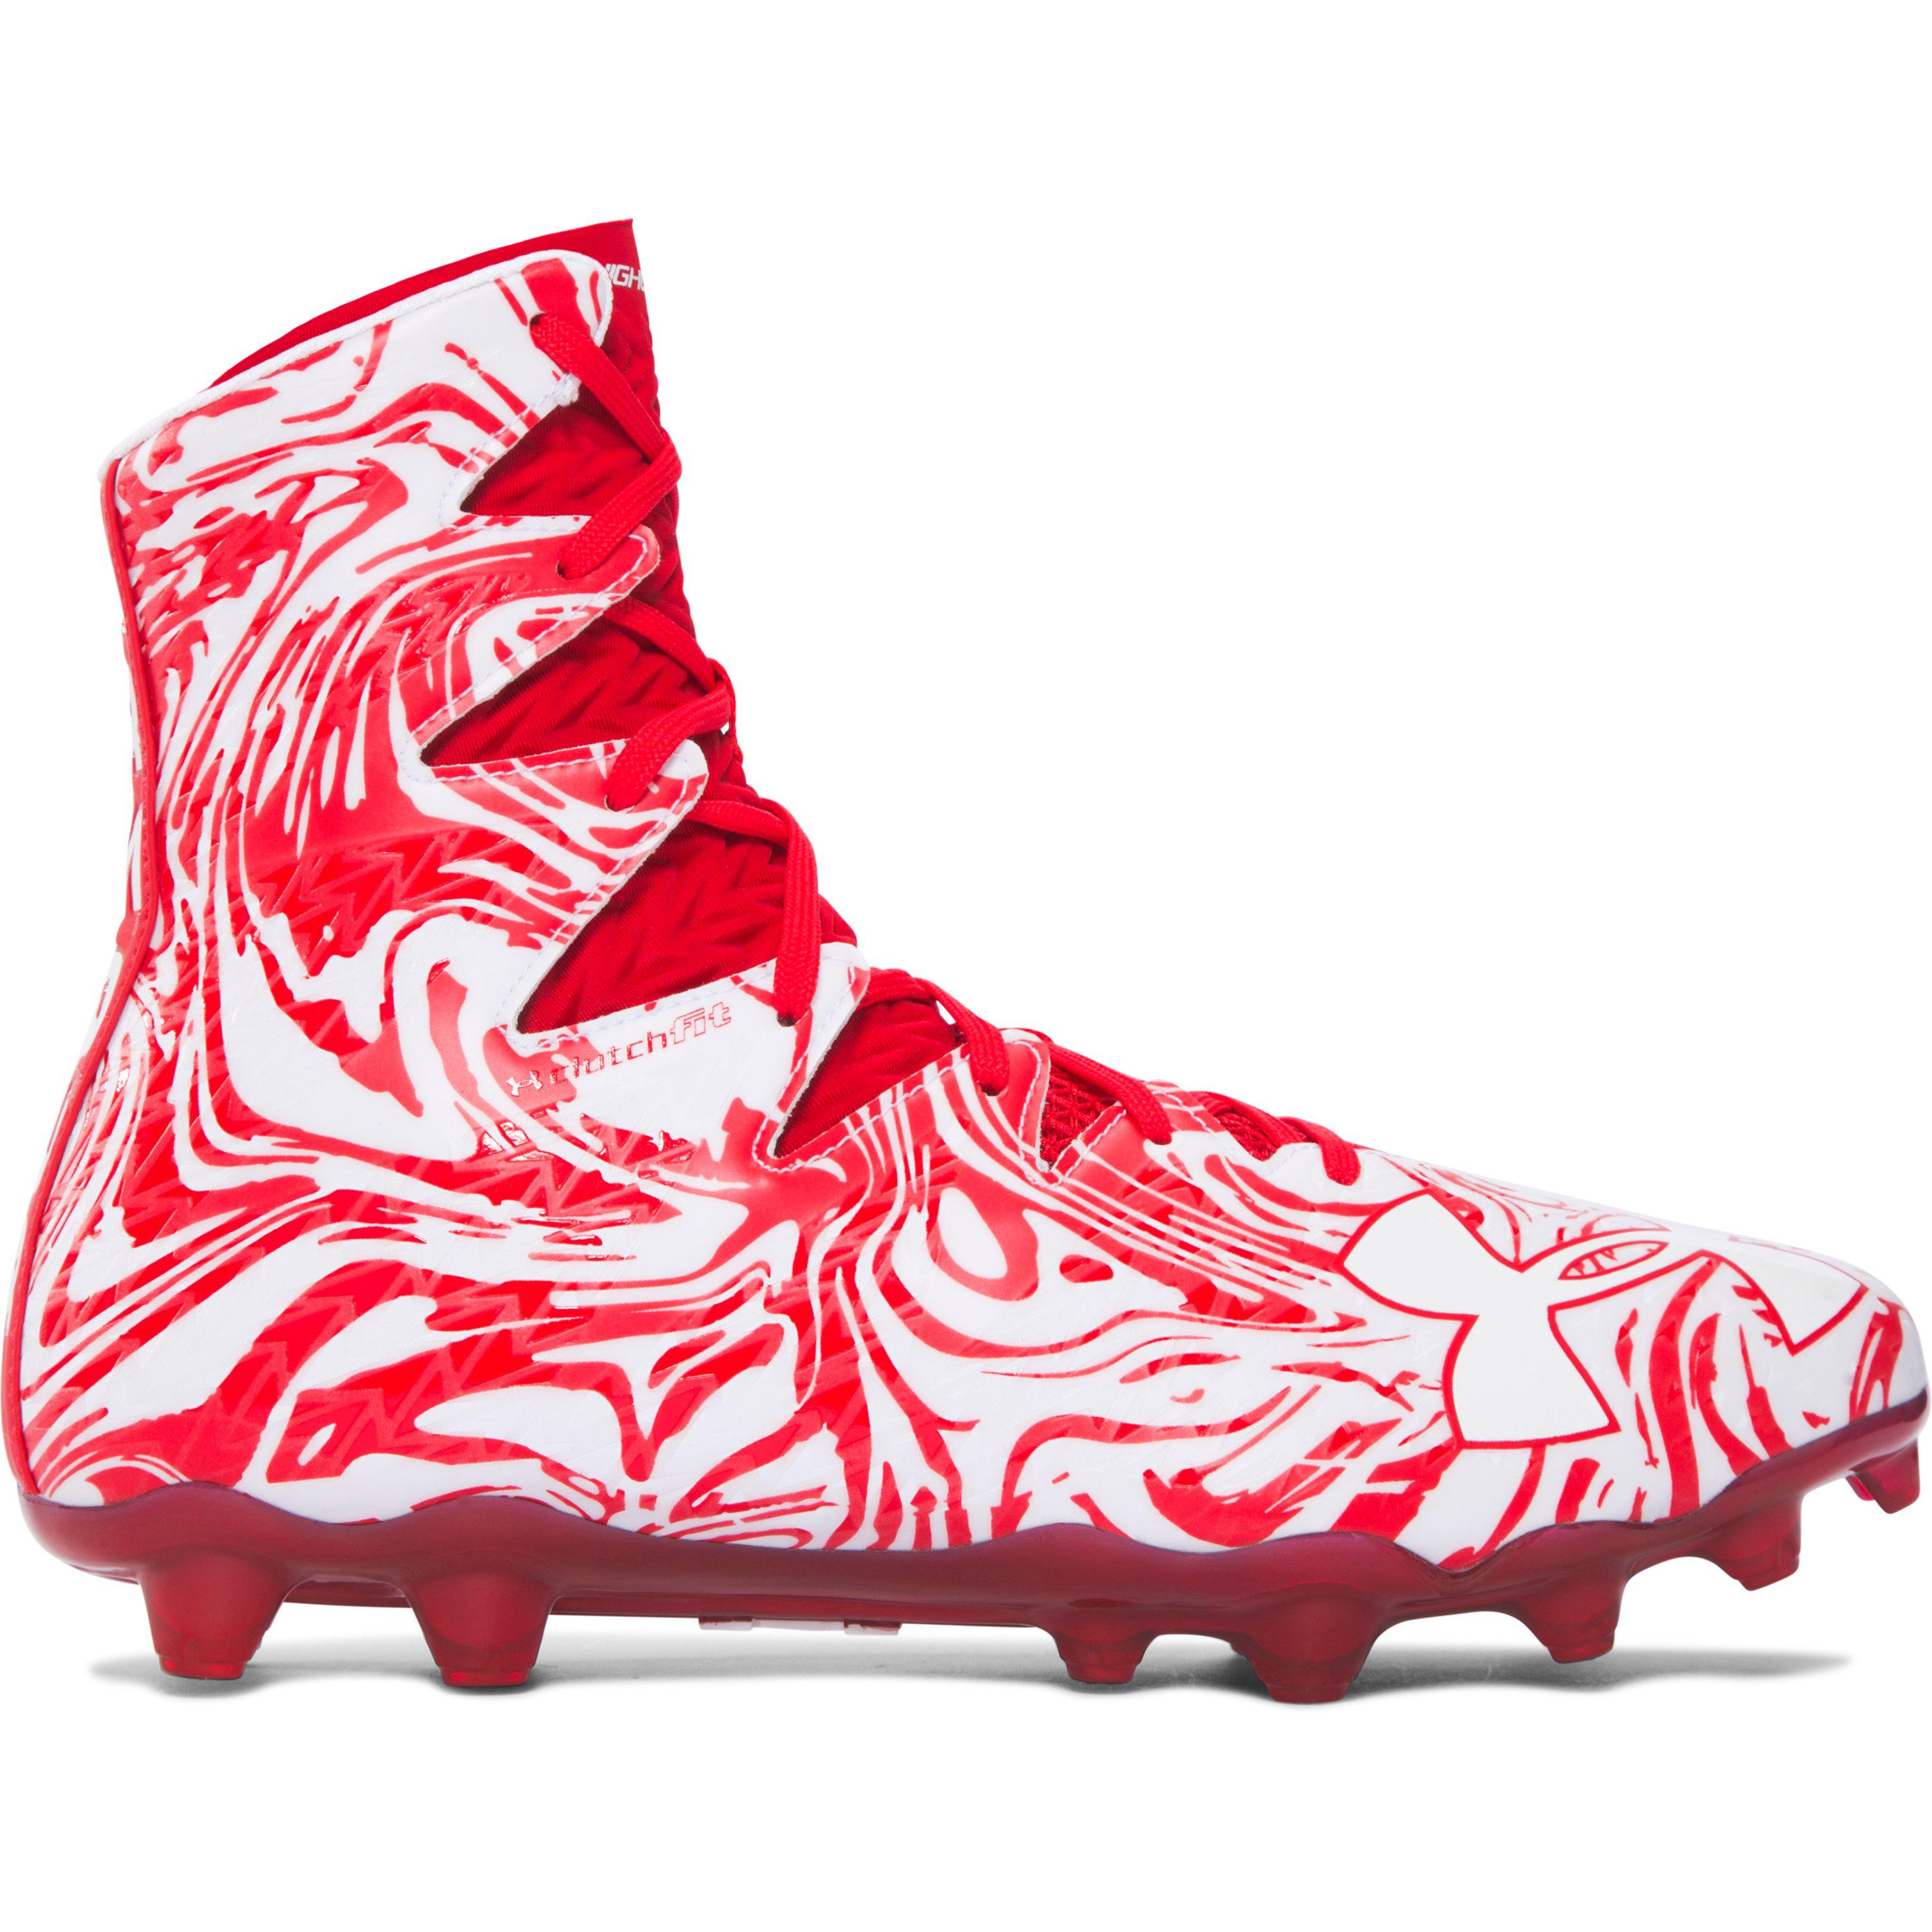 29f7cc8b3583 Under Armour Men's Ua Highlight Lux Mc Football Cleats in Red for ...